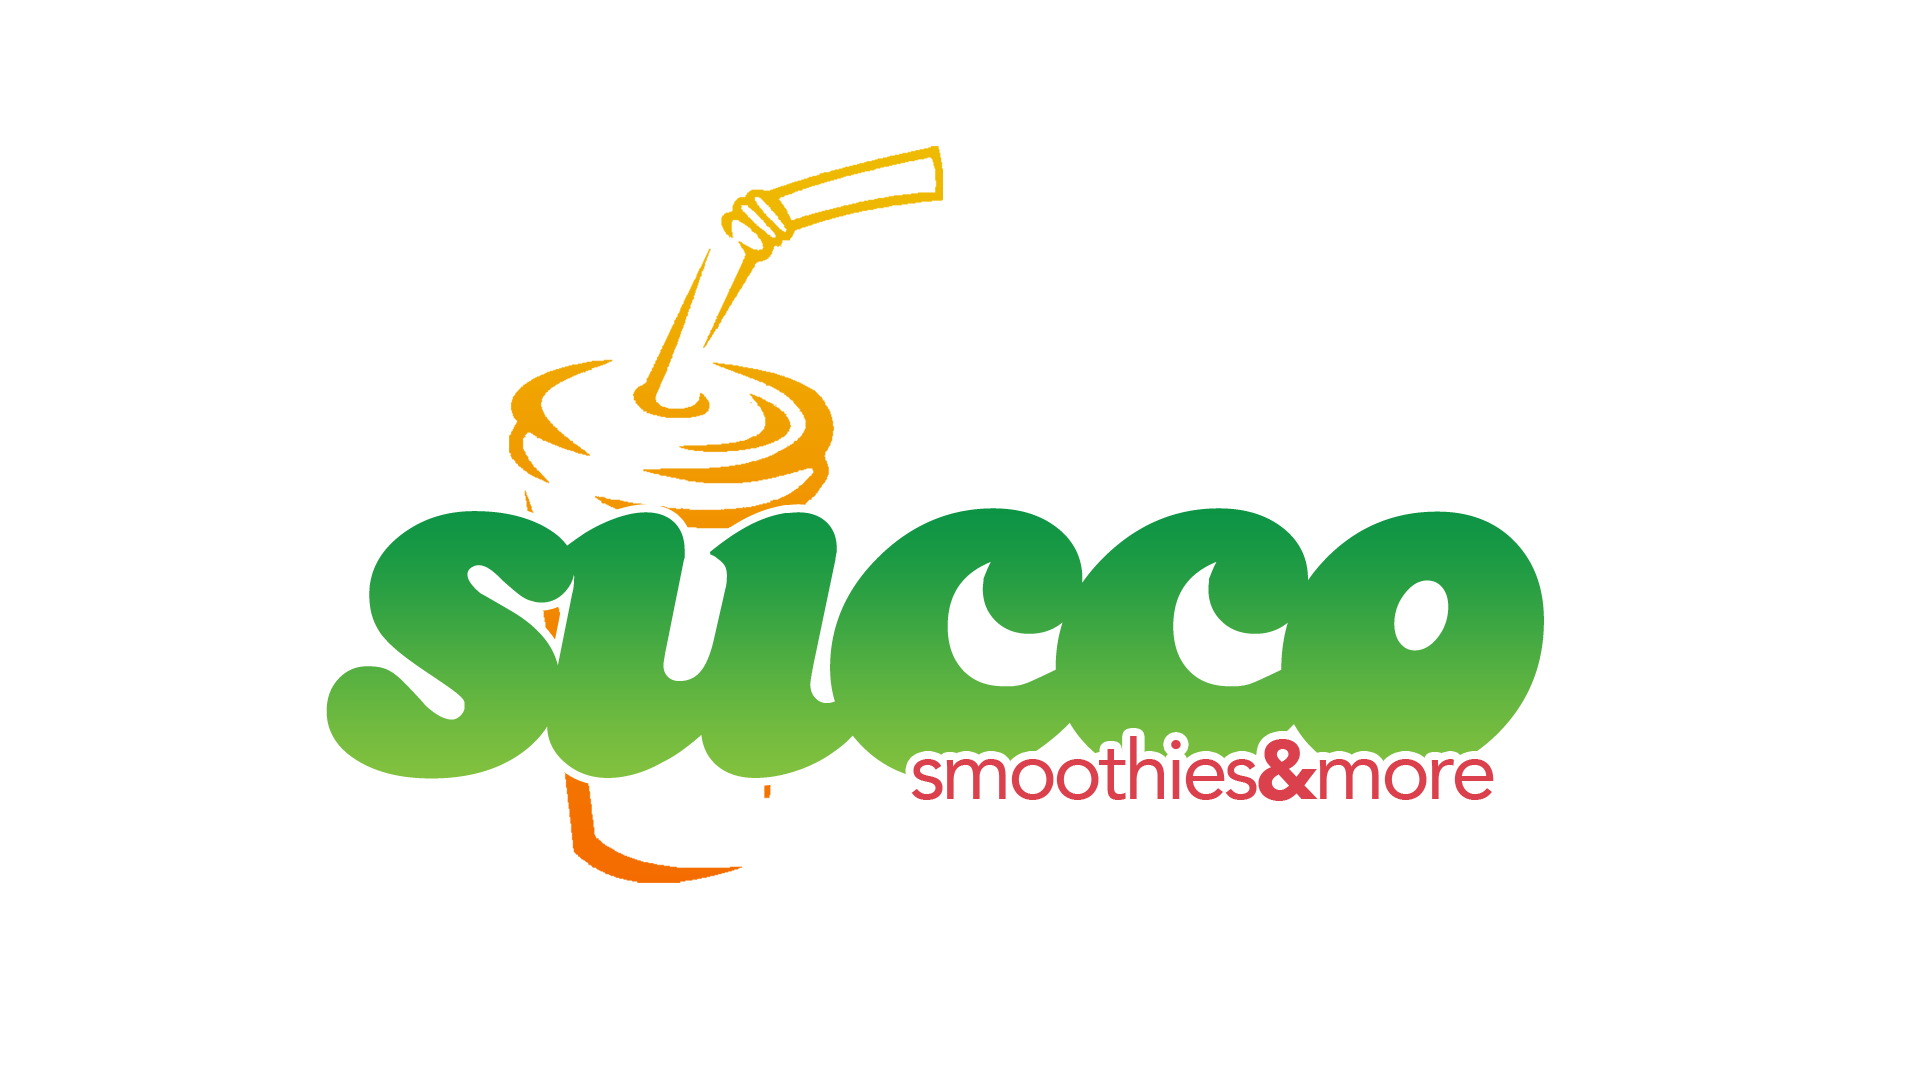 Succo Smoothies & More